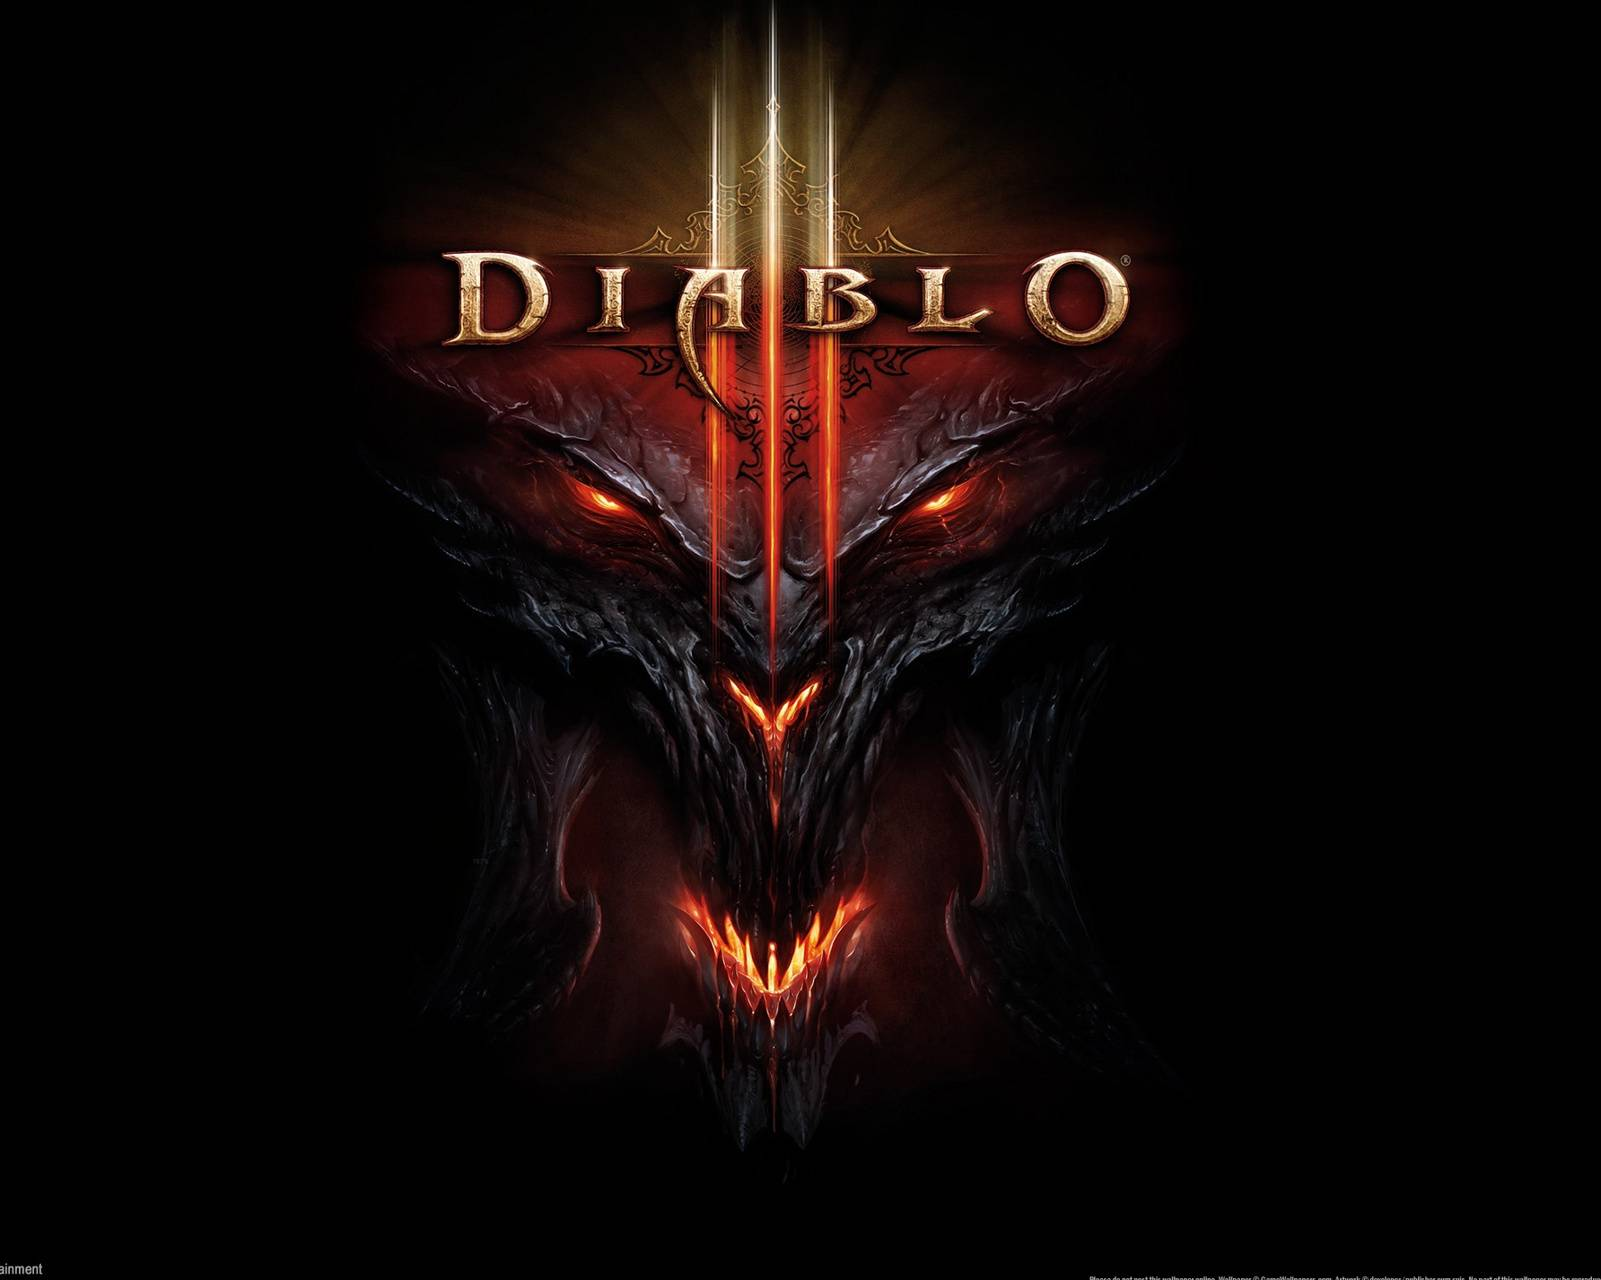 Diablo 3 Logo wallpaper by Dingbot - e0 - Free on ZEDGE™